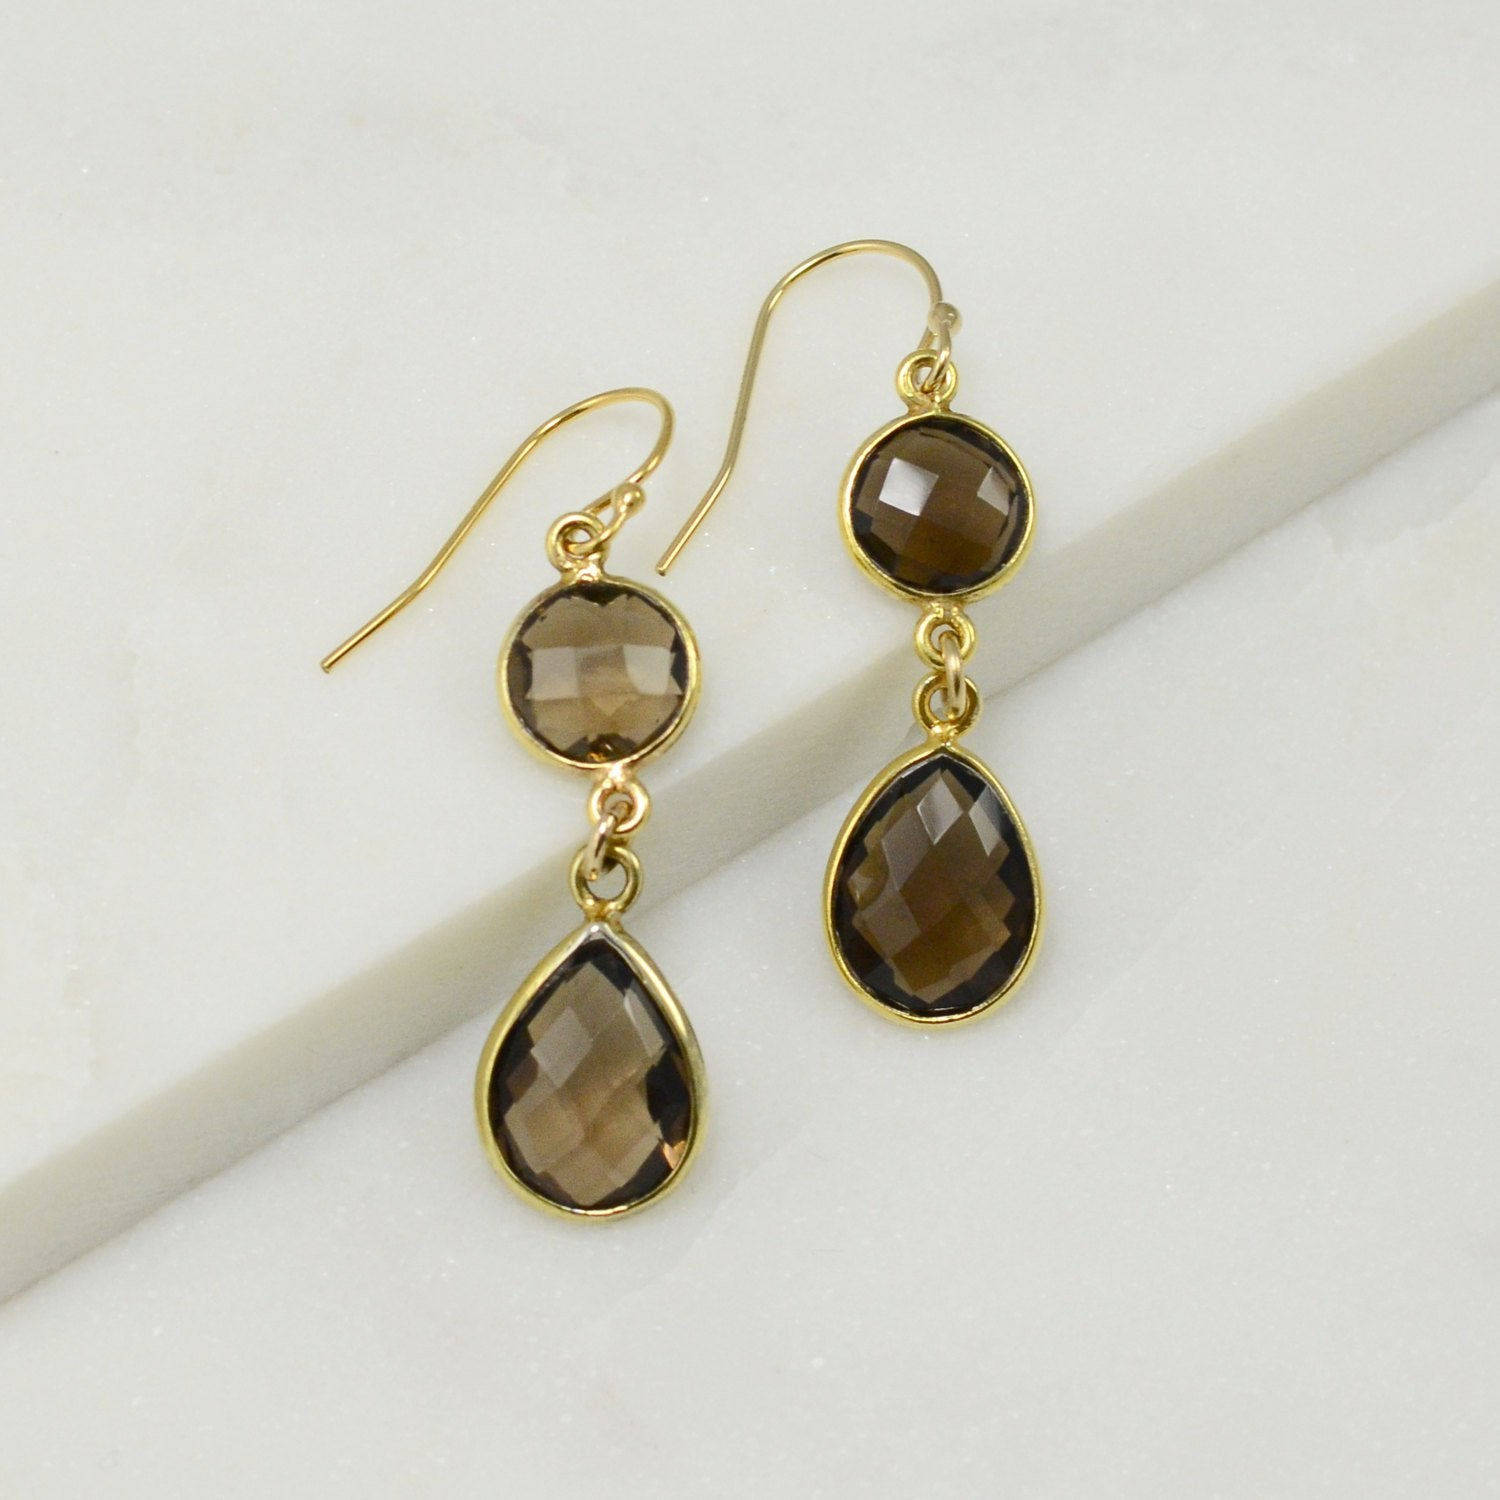 Smoky Quartz Earring - Color Gemstone Earrings - Dangle and Drop Earring - Two tier earring - Bezel Drop Earrings - Bridesmaid Earrings